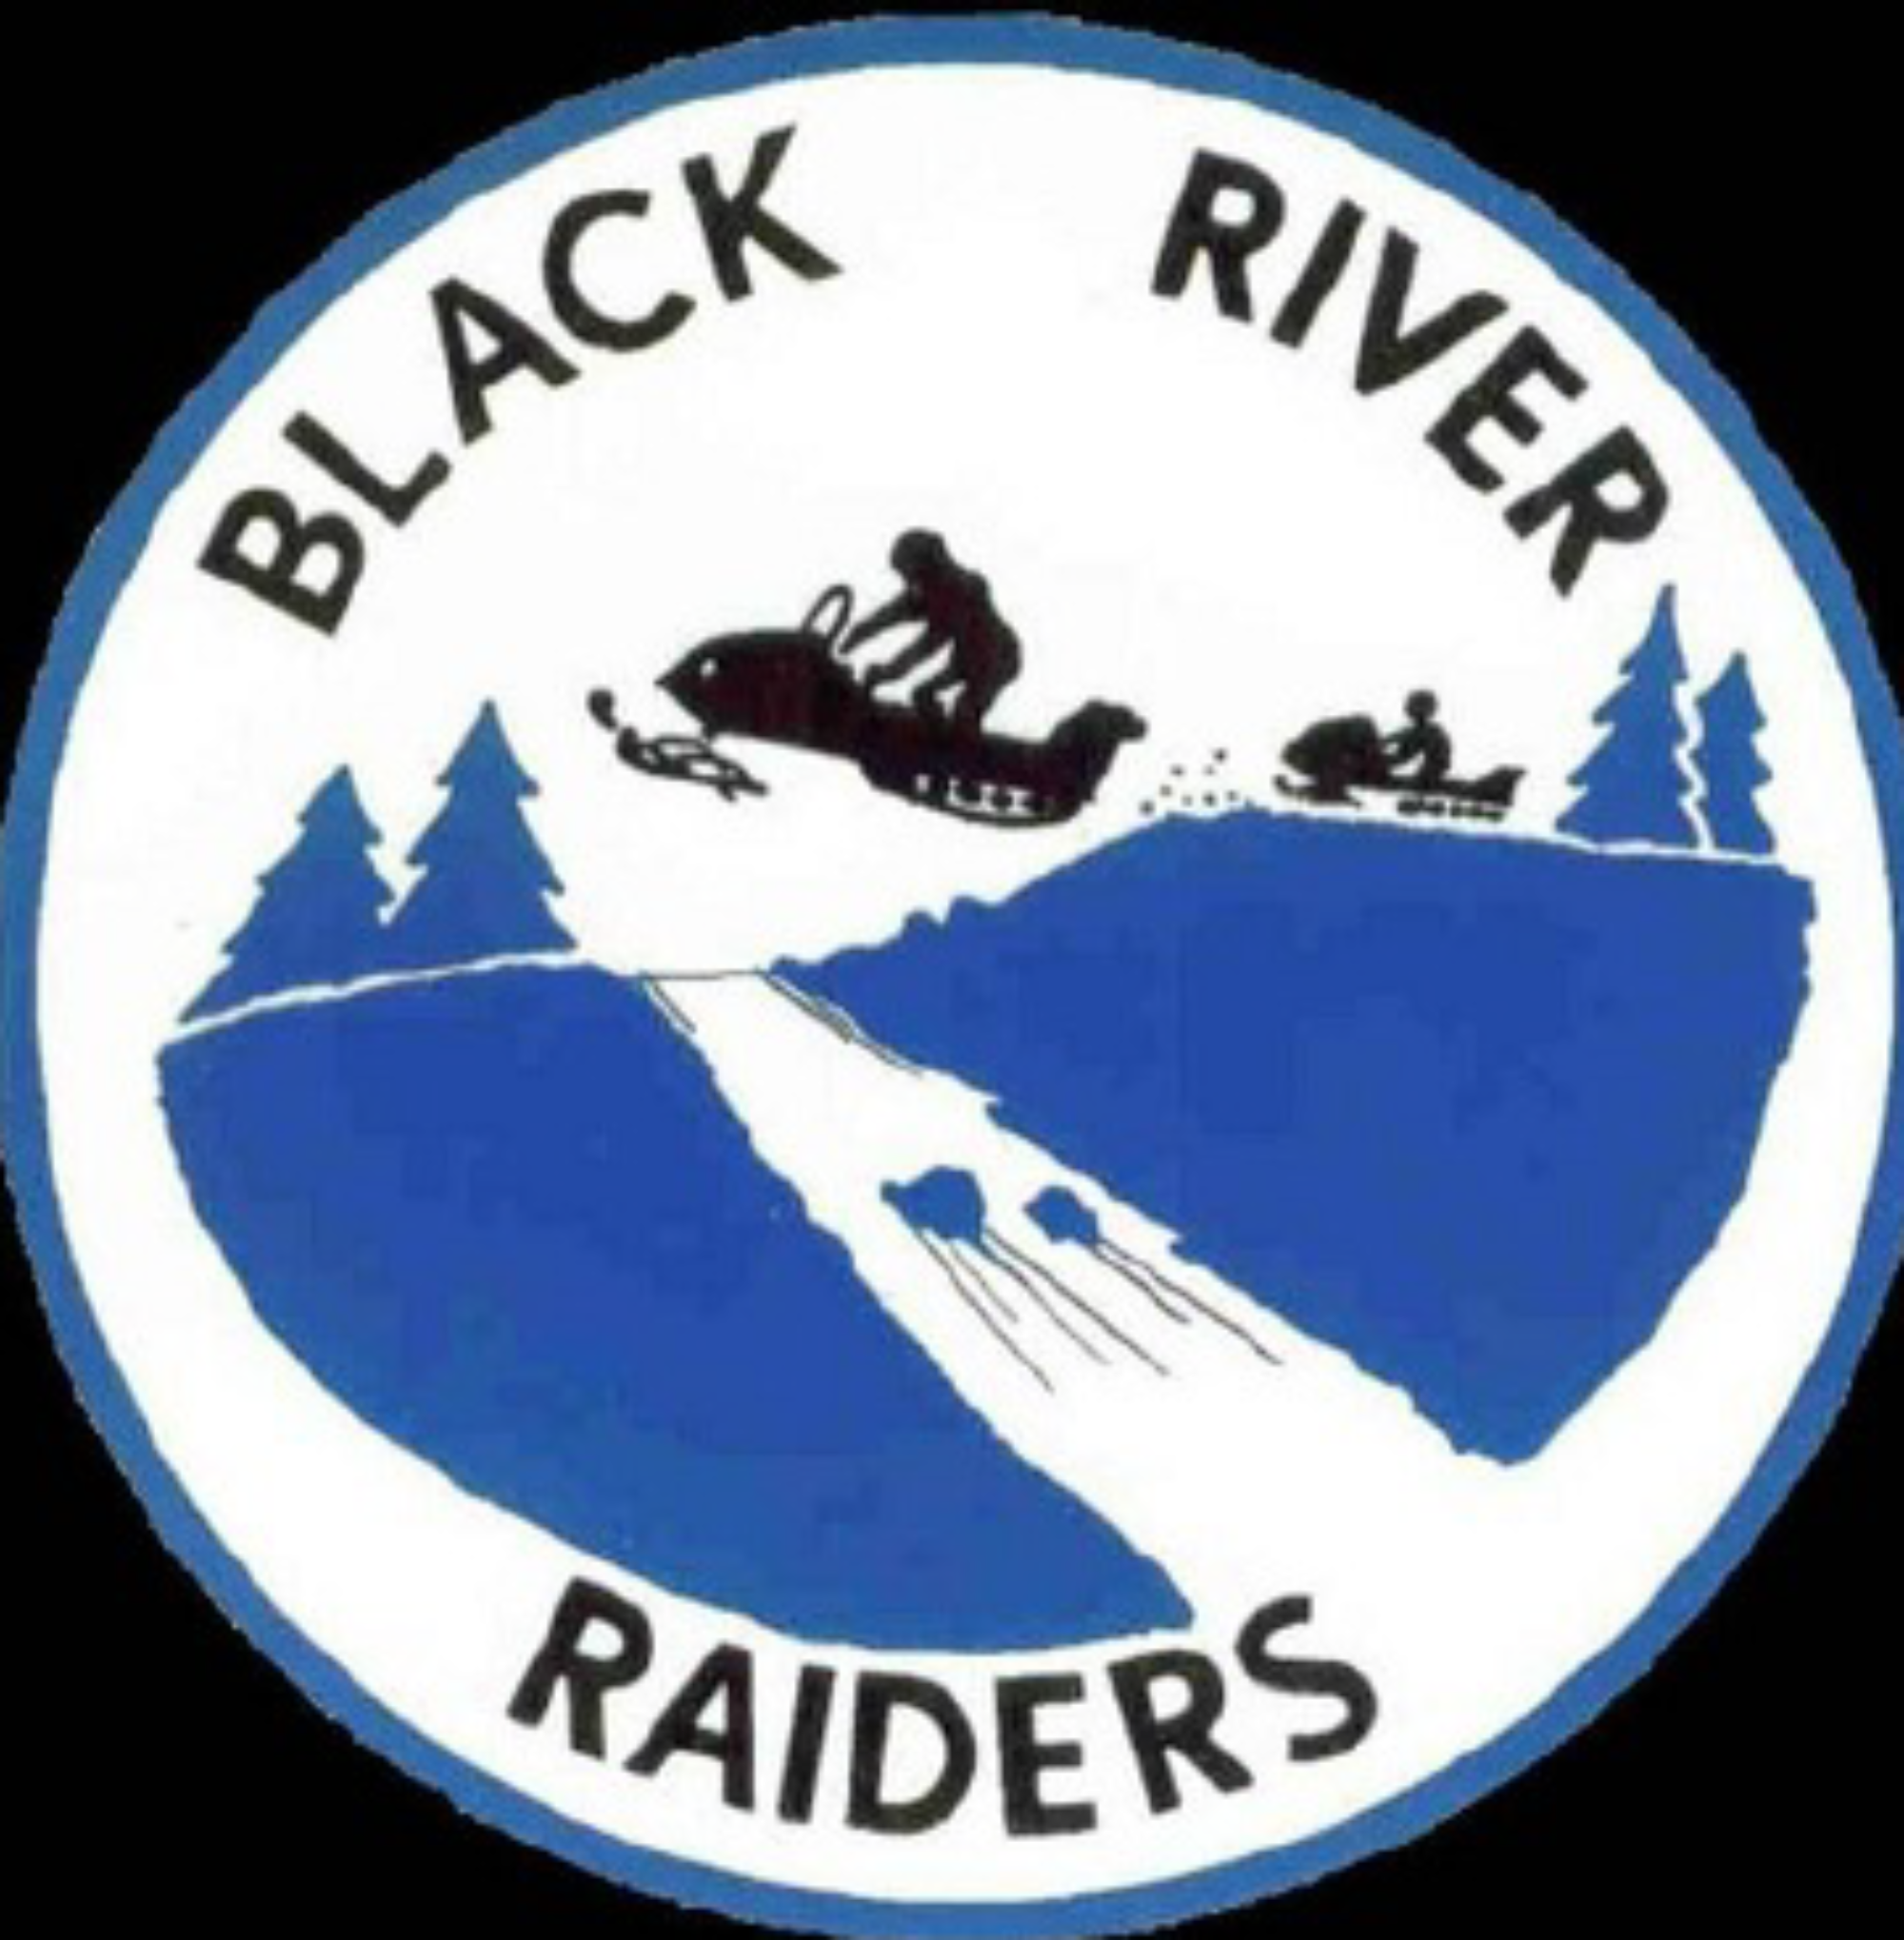 Black River Raiders